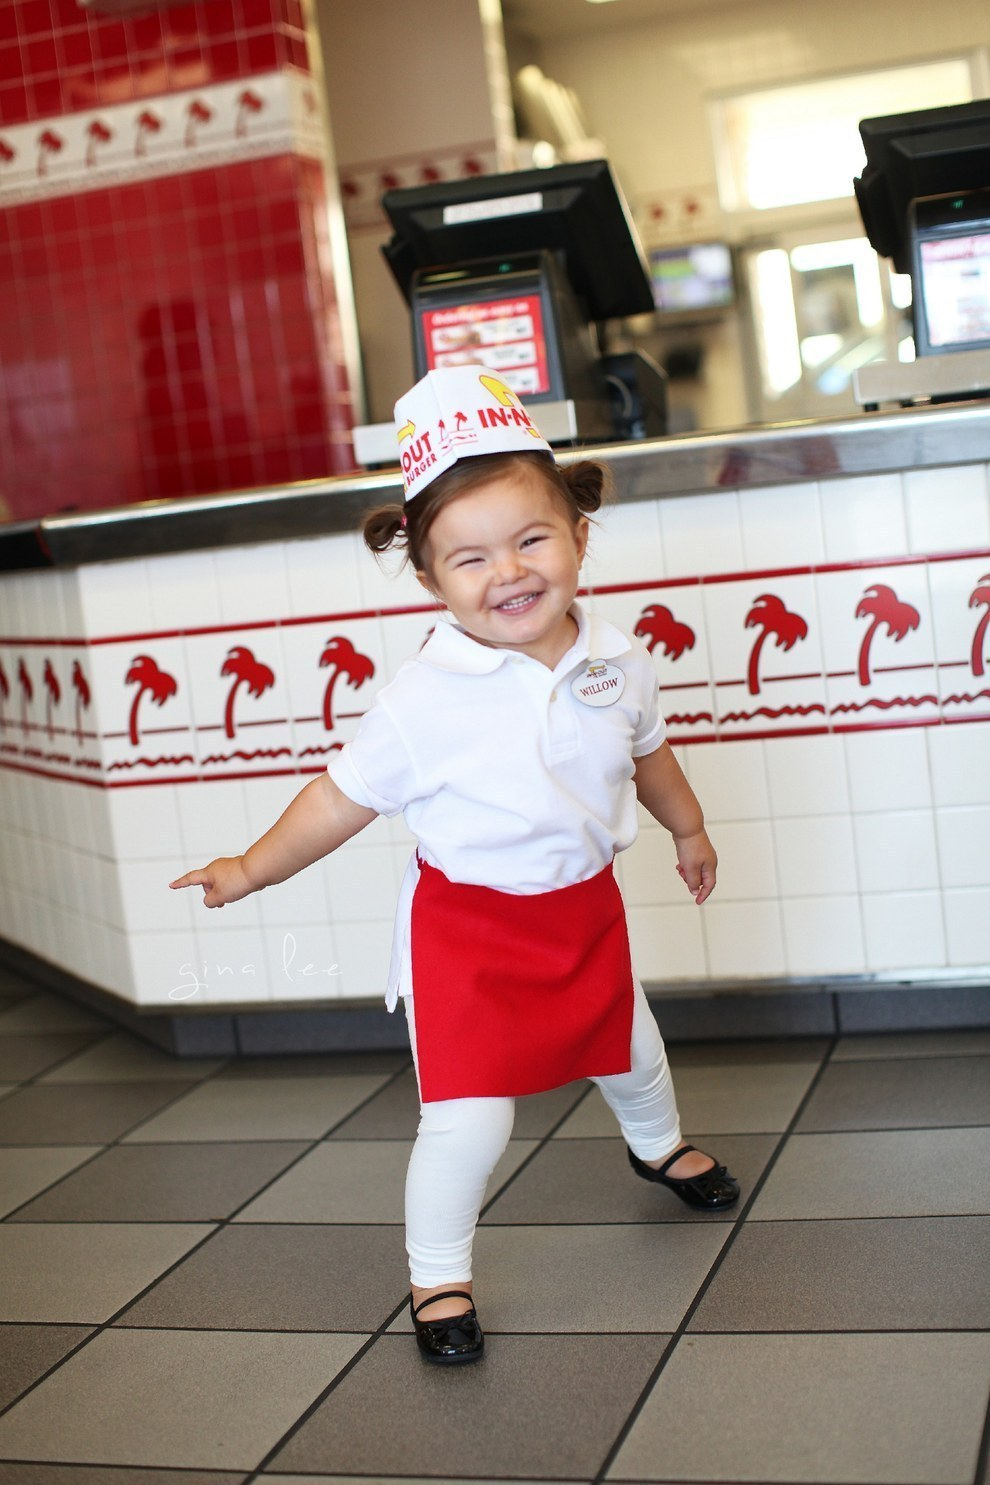 An In-N-Out employee…